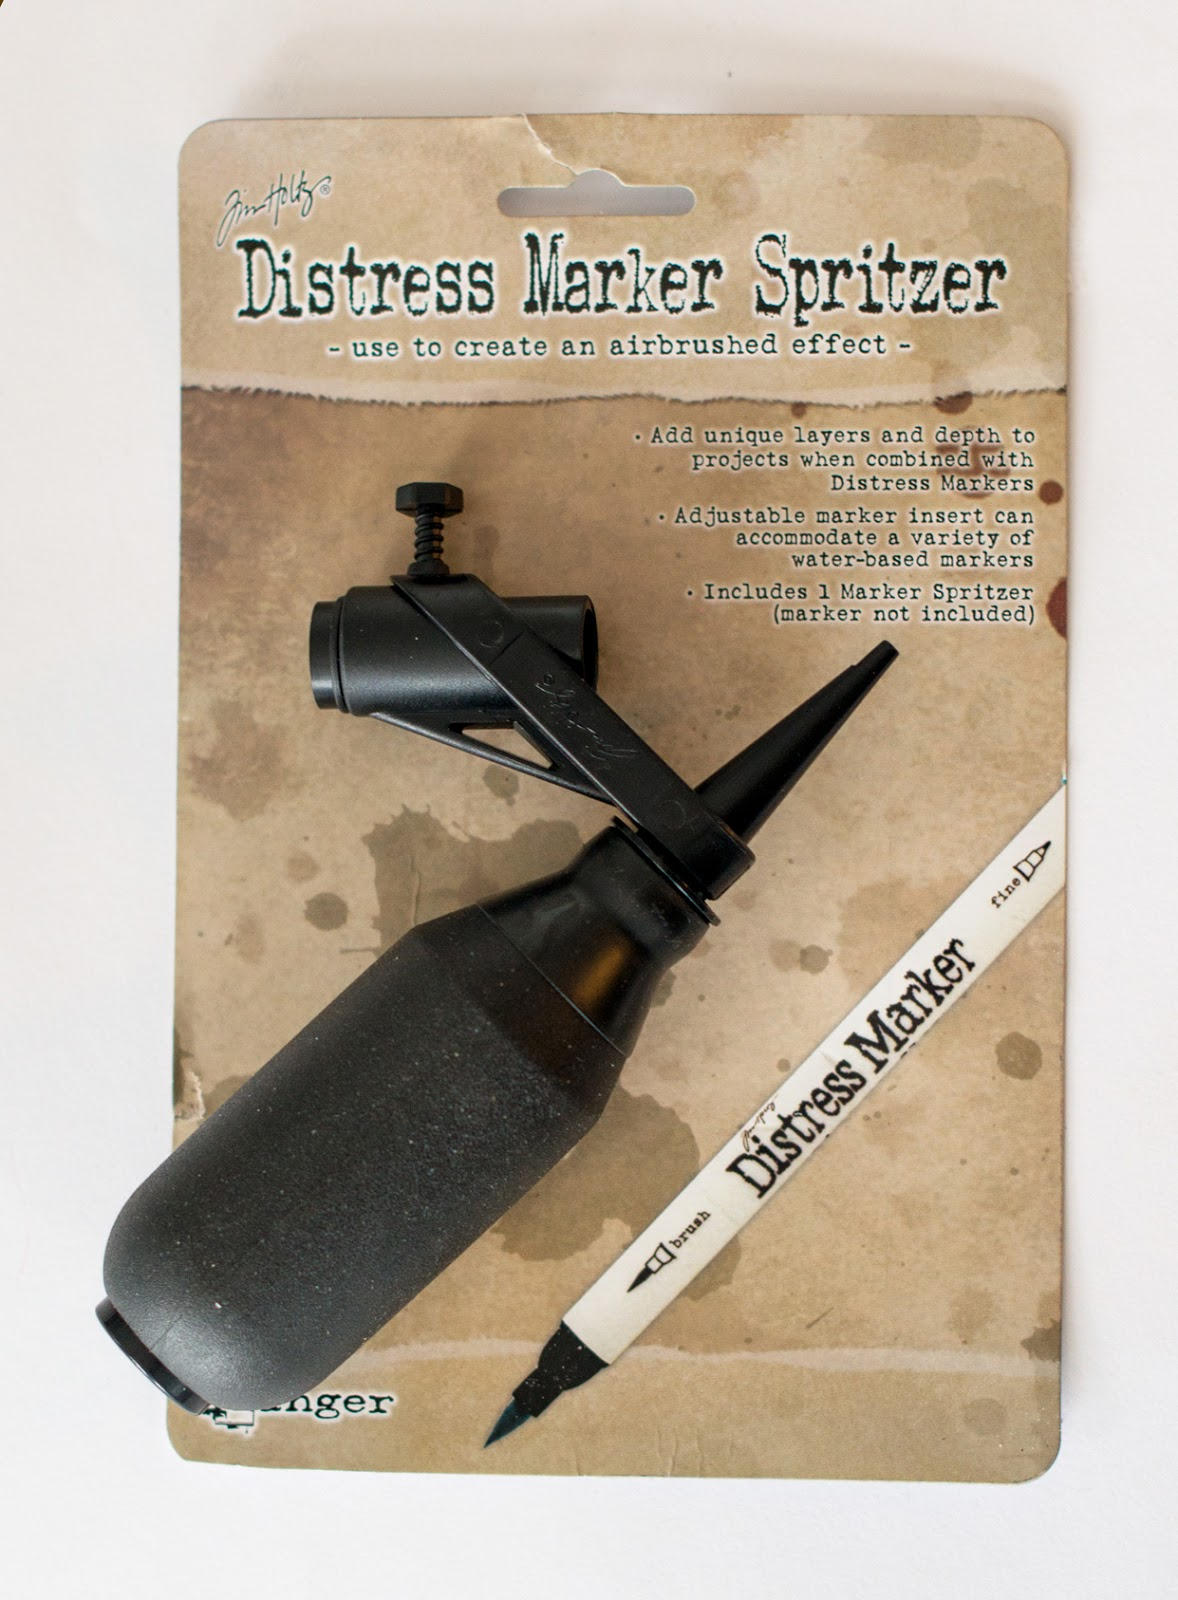 Distress Marker Spritzer